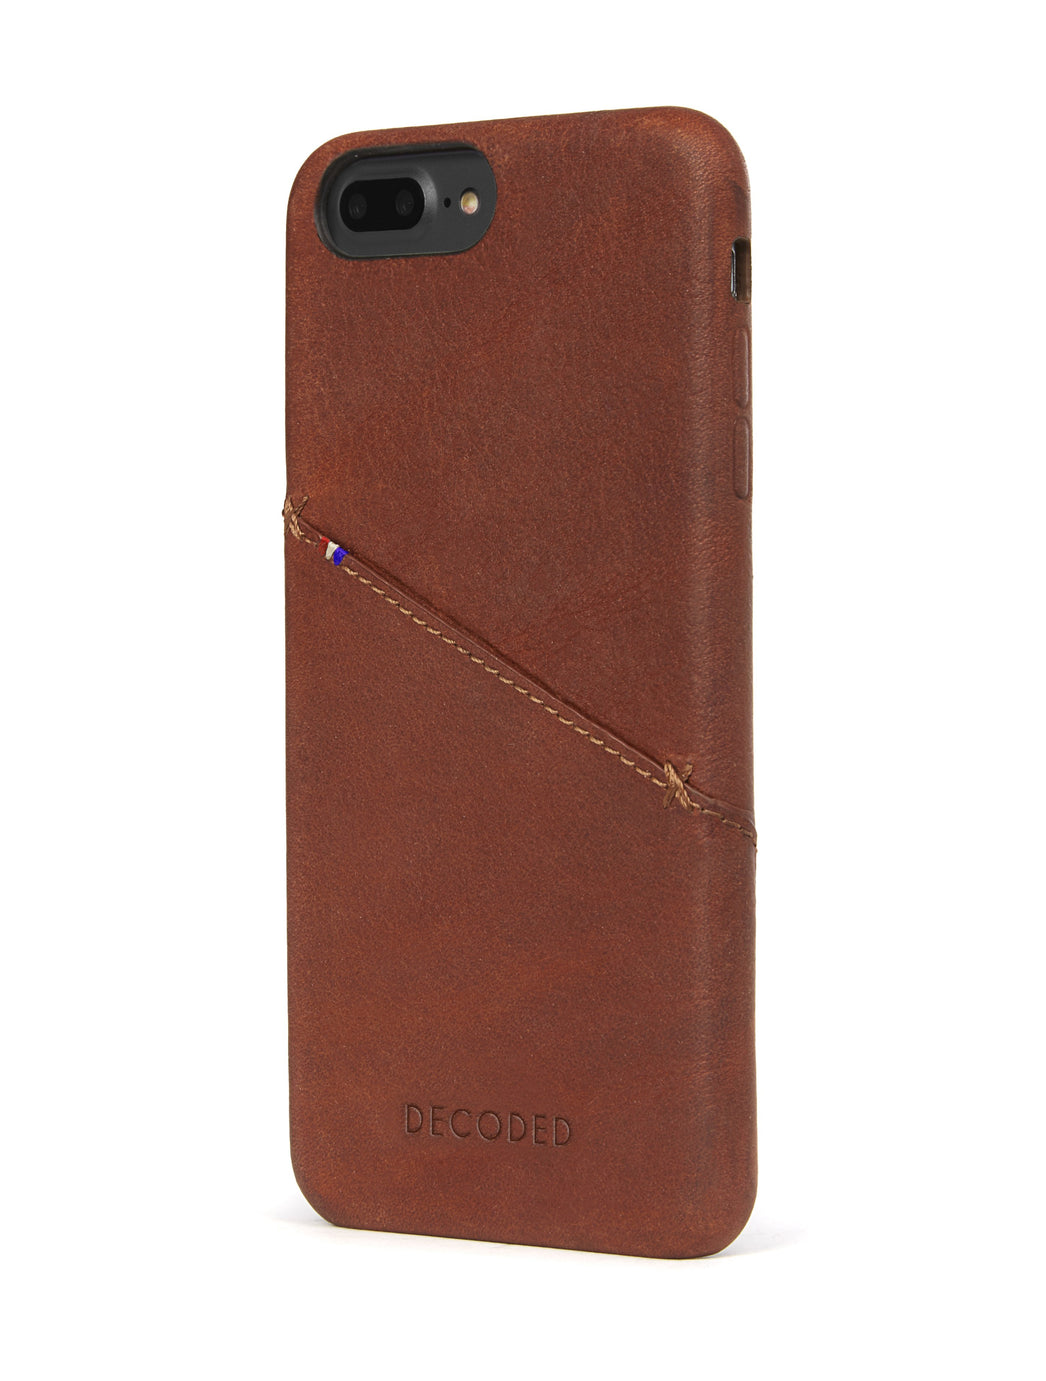 Back Cover Card Case Brown - iPhone 6 / 6s Plus